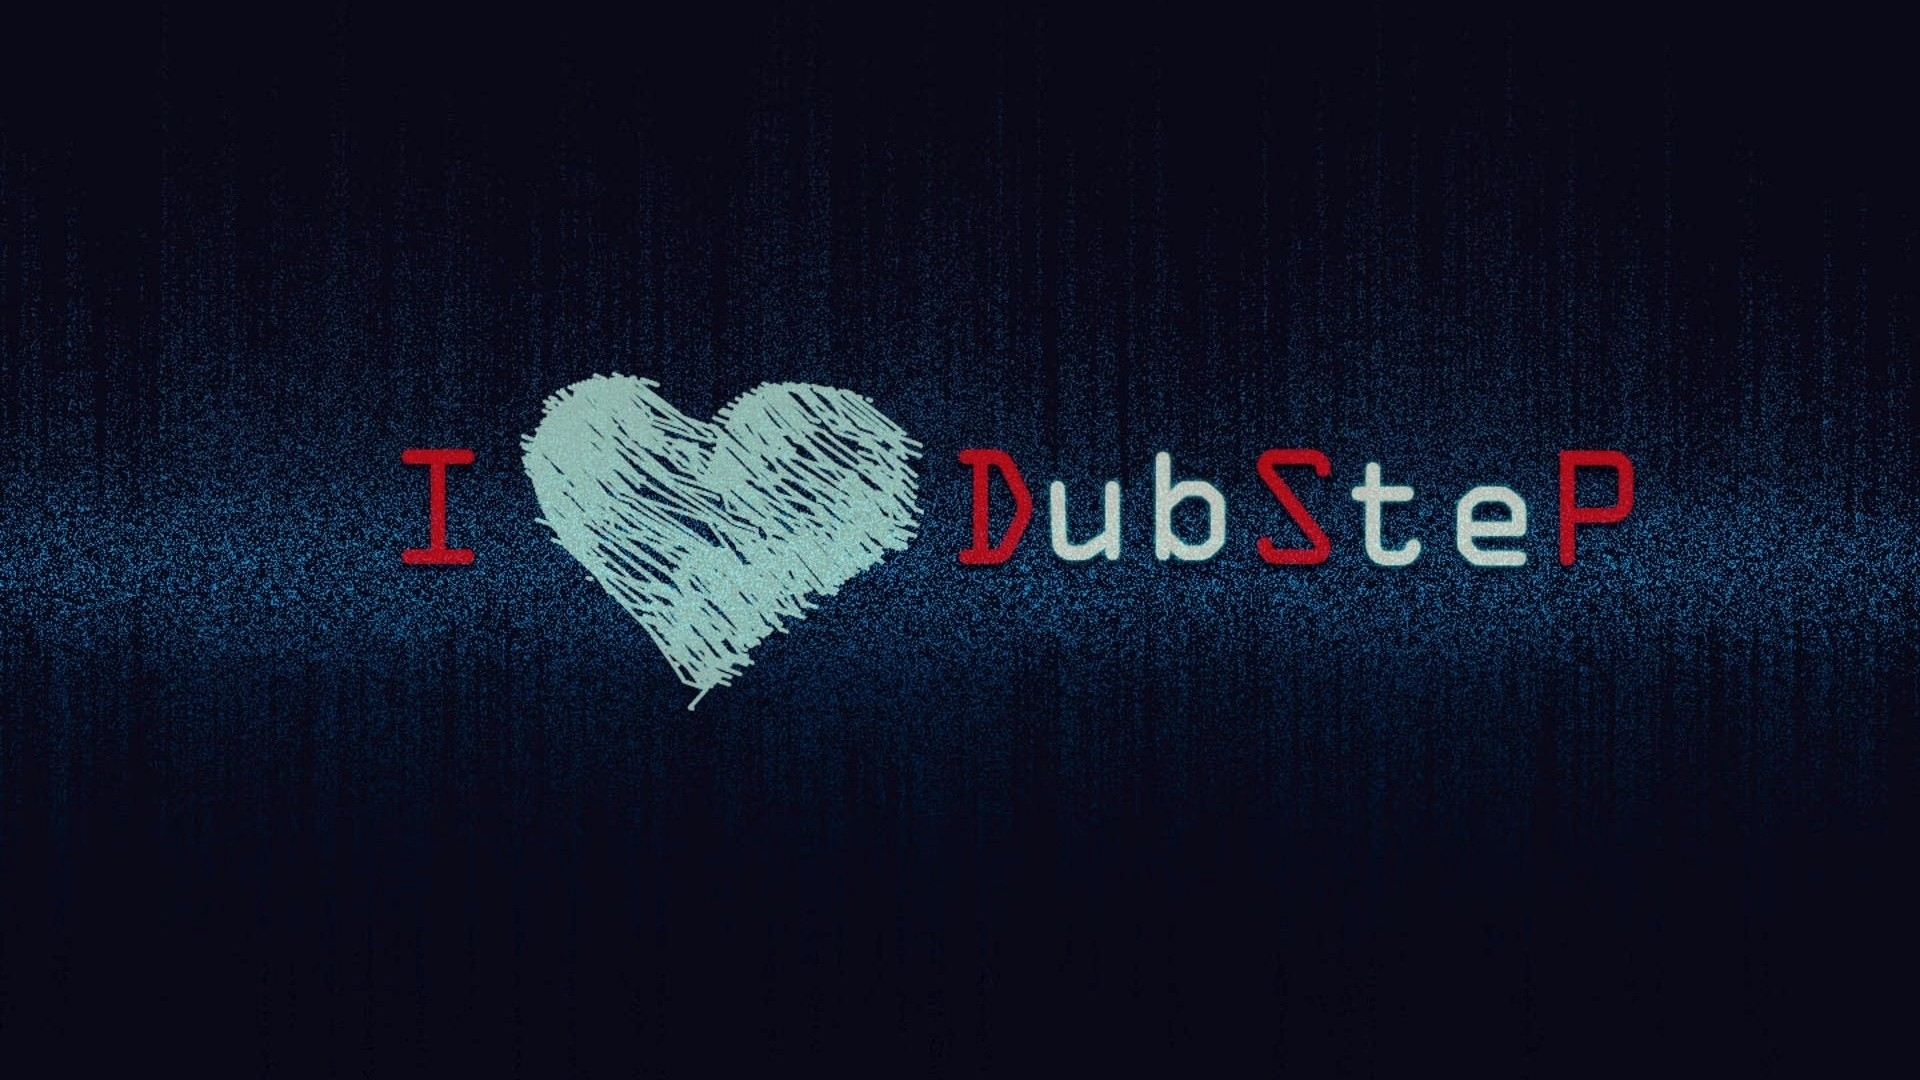 I Love Dubstep HD Music 4k Wallpapers Images Backgrounds Photos